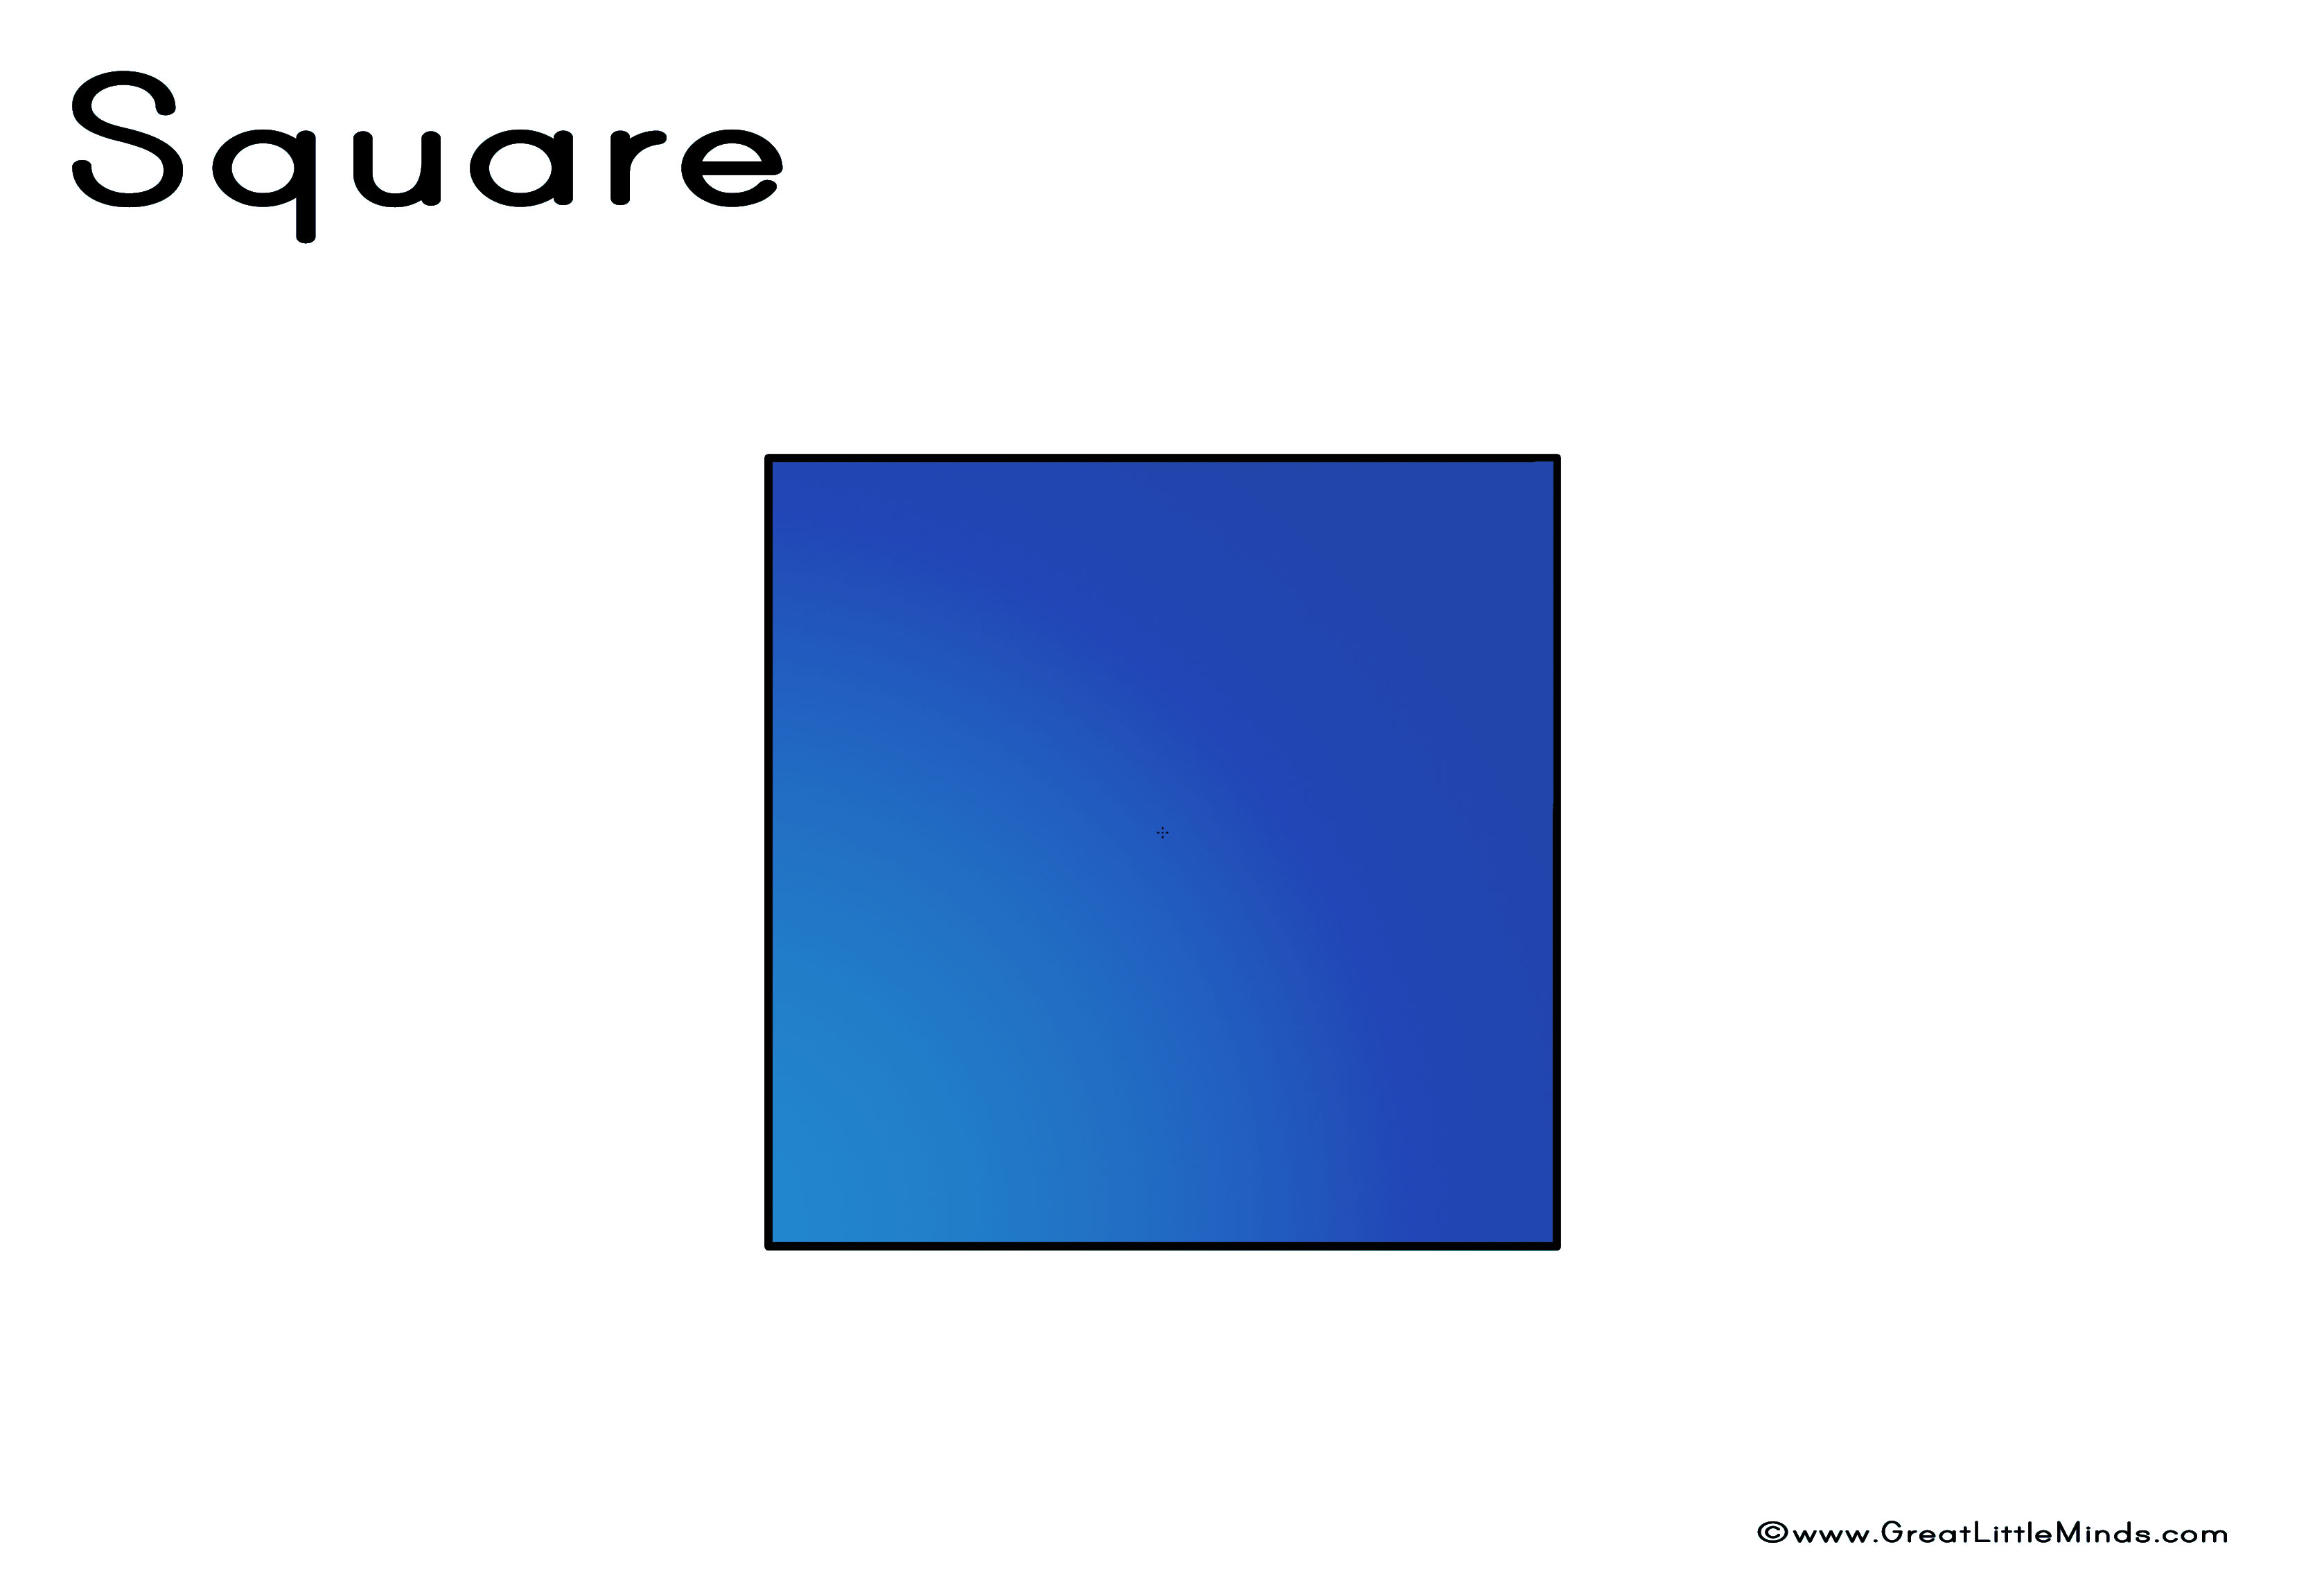 quadrilateral rectangle - photo #46